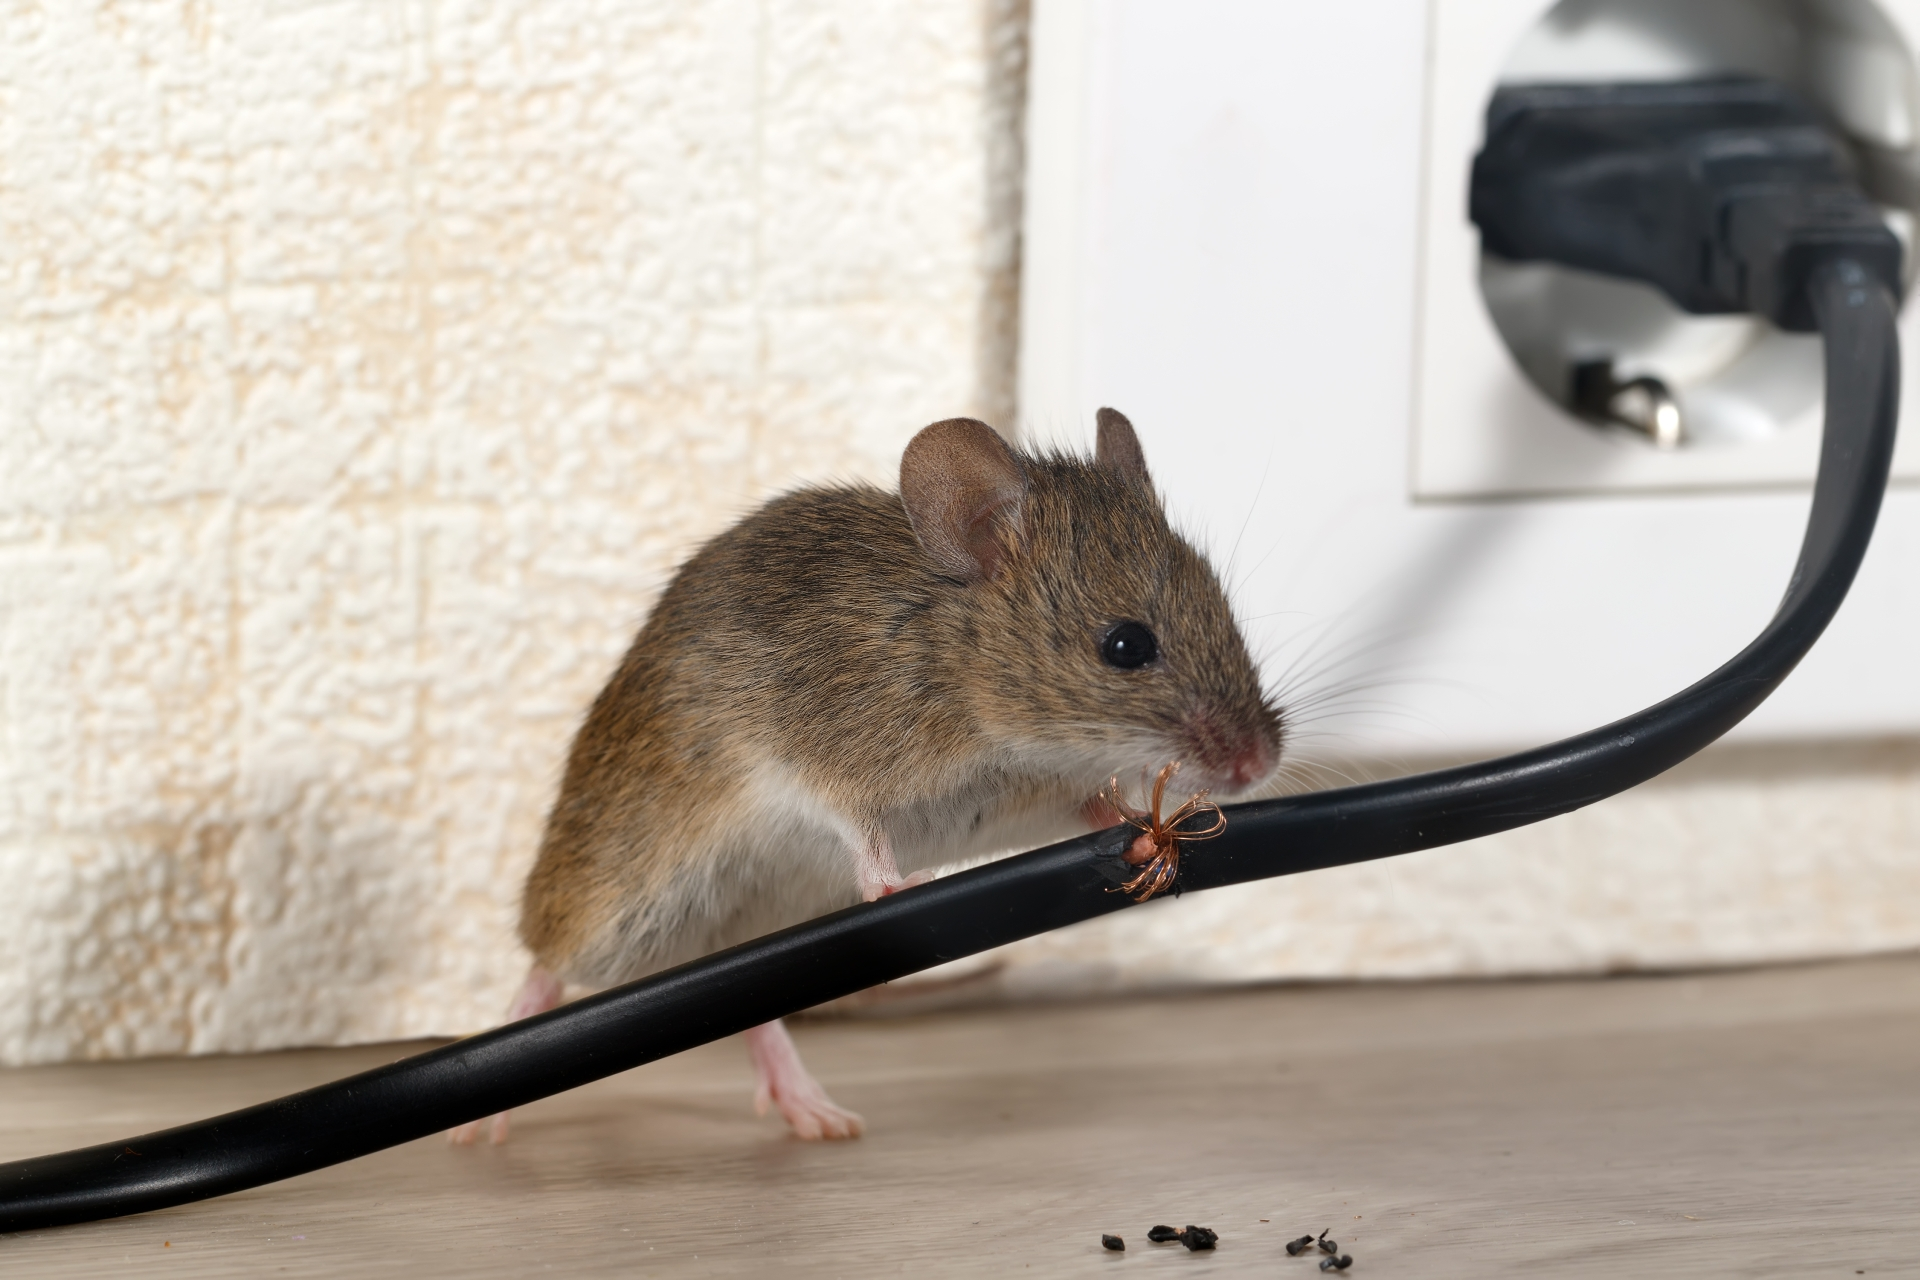 Mice Infestation, Pest Control in Shoreditch, E2. Call Now 020 8166 9746